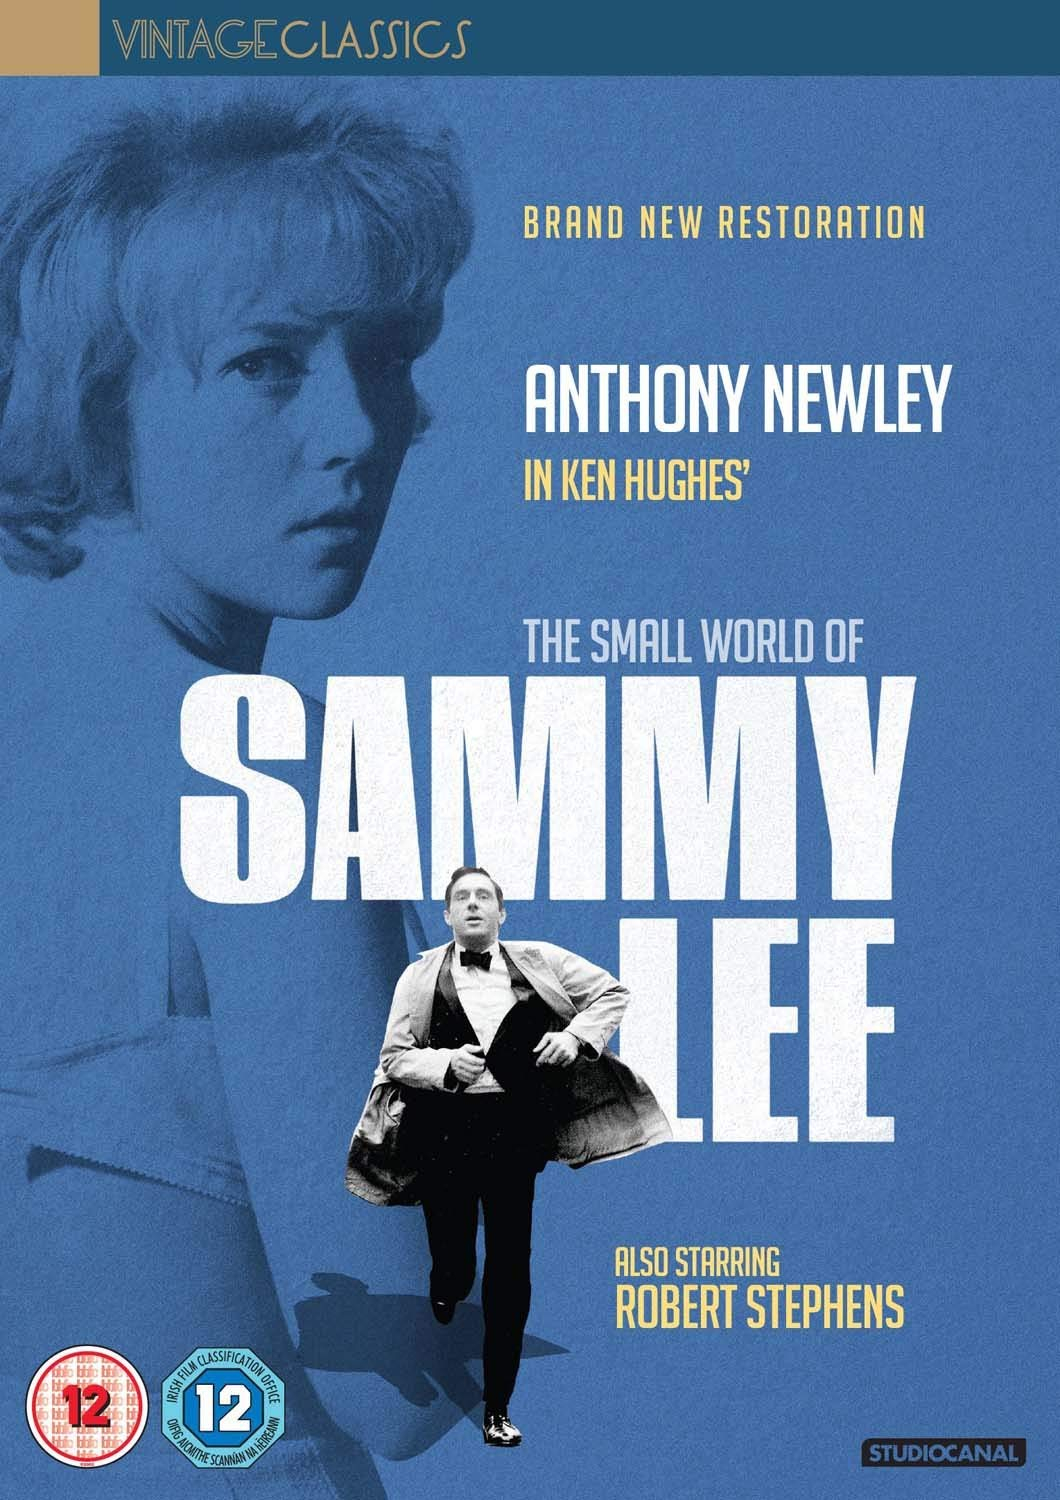 Buy The Small World of Sammy Lee